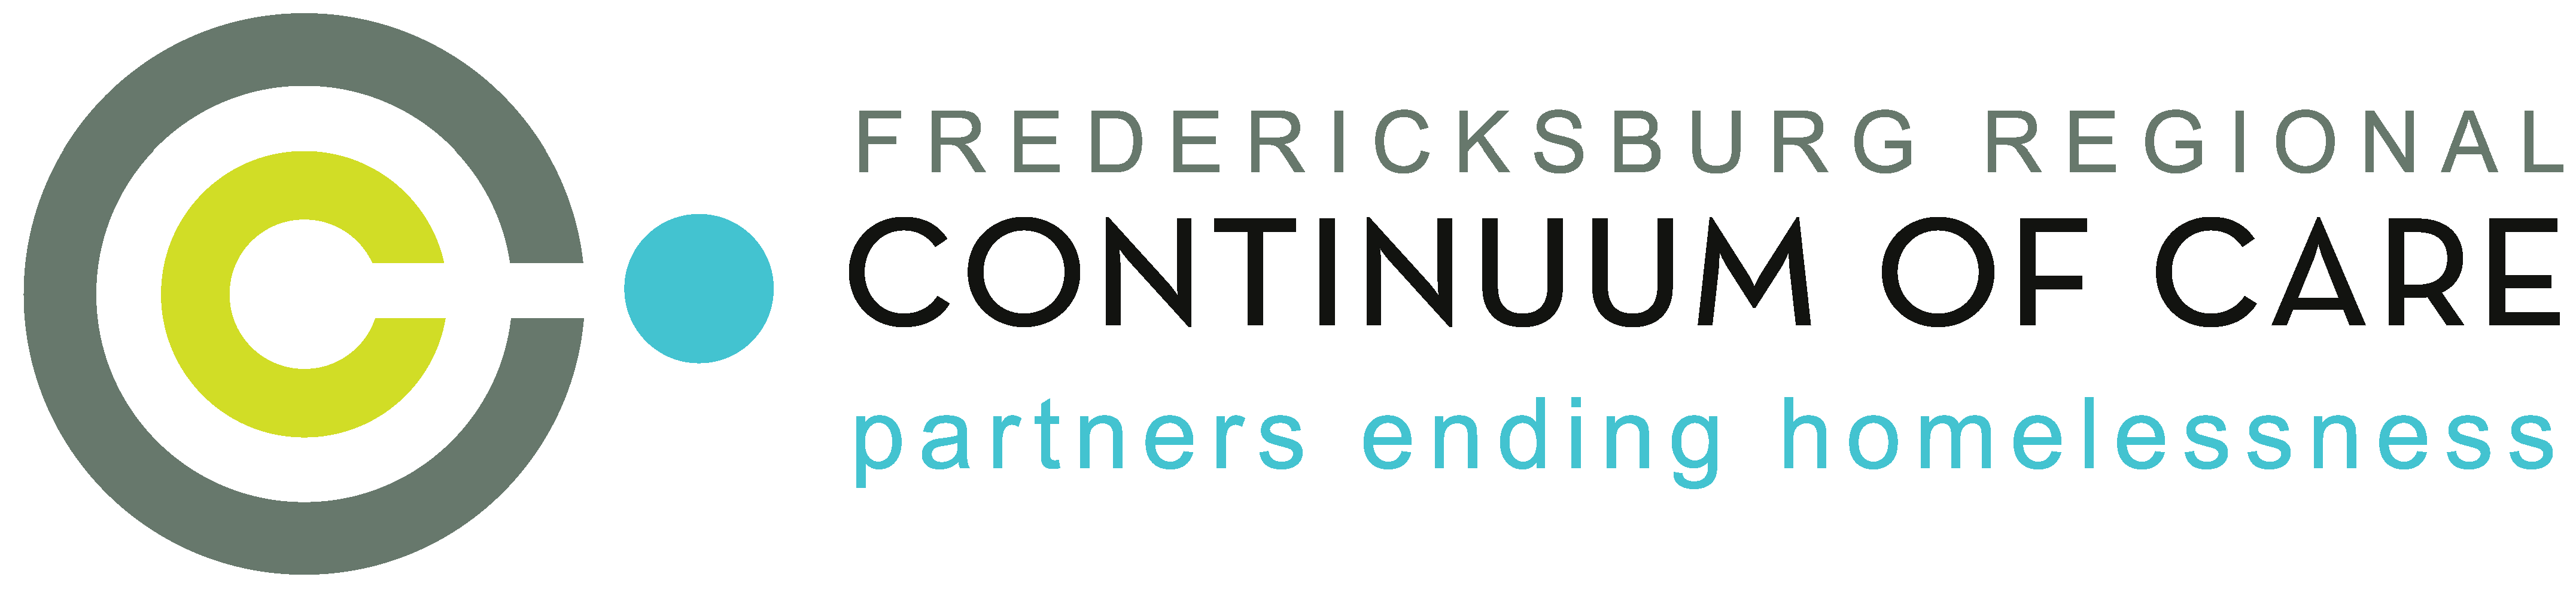 Fredericksburg Regional Continuum of Care